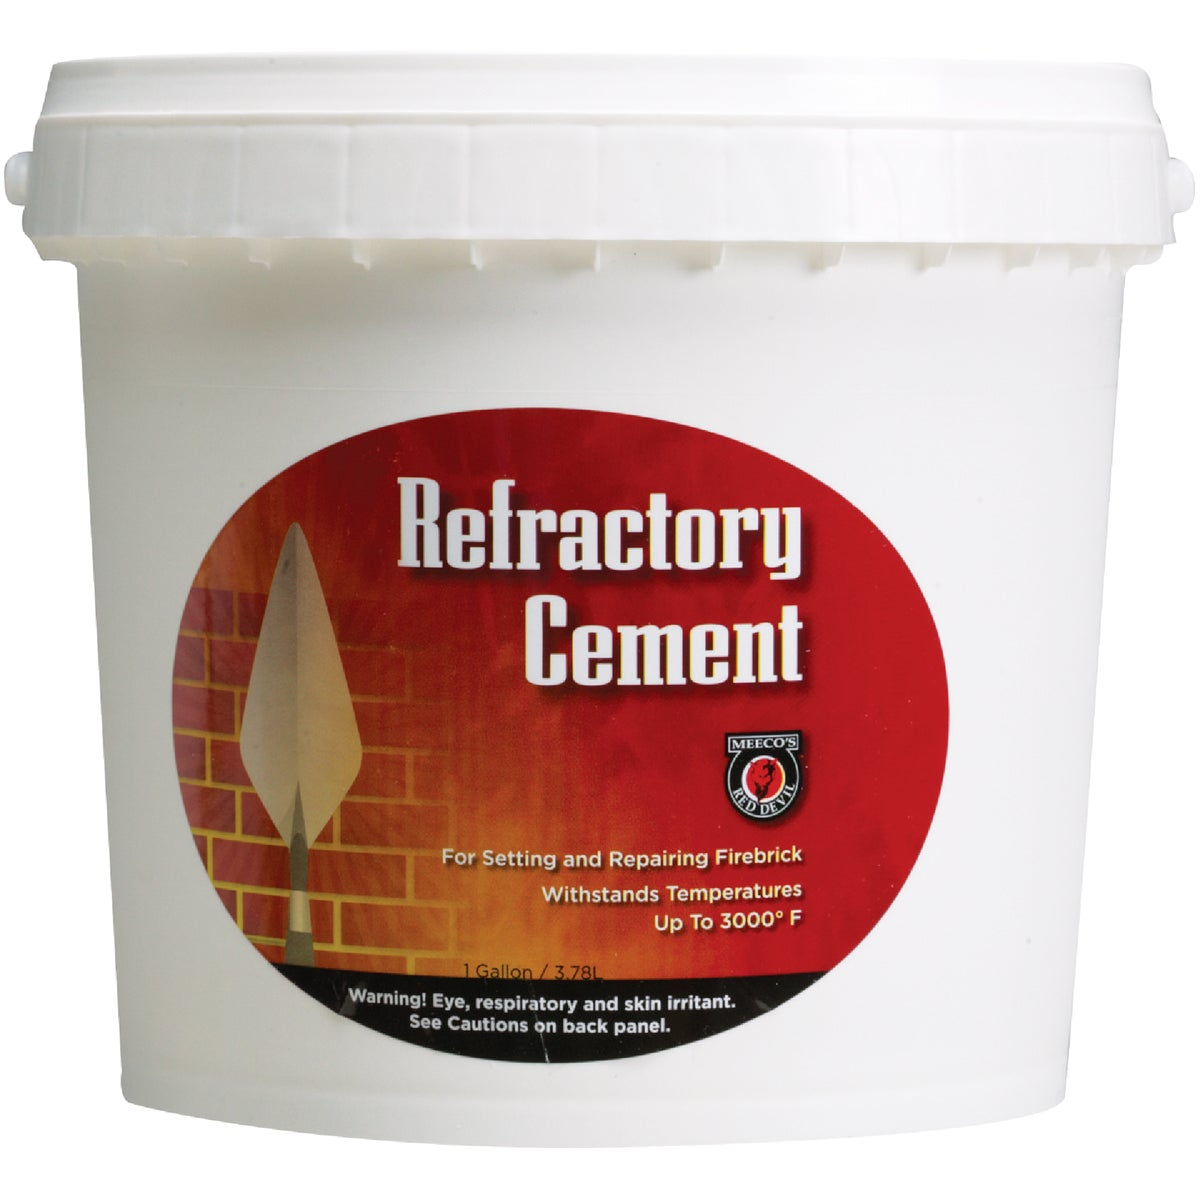 Meeco Mfg. Co., Inc. GAL REFRACTORY CEMENT 611